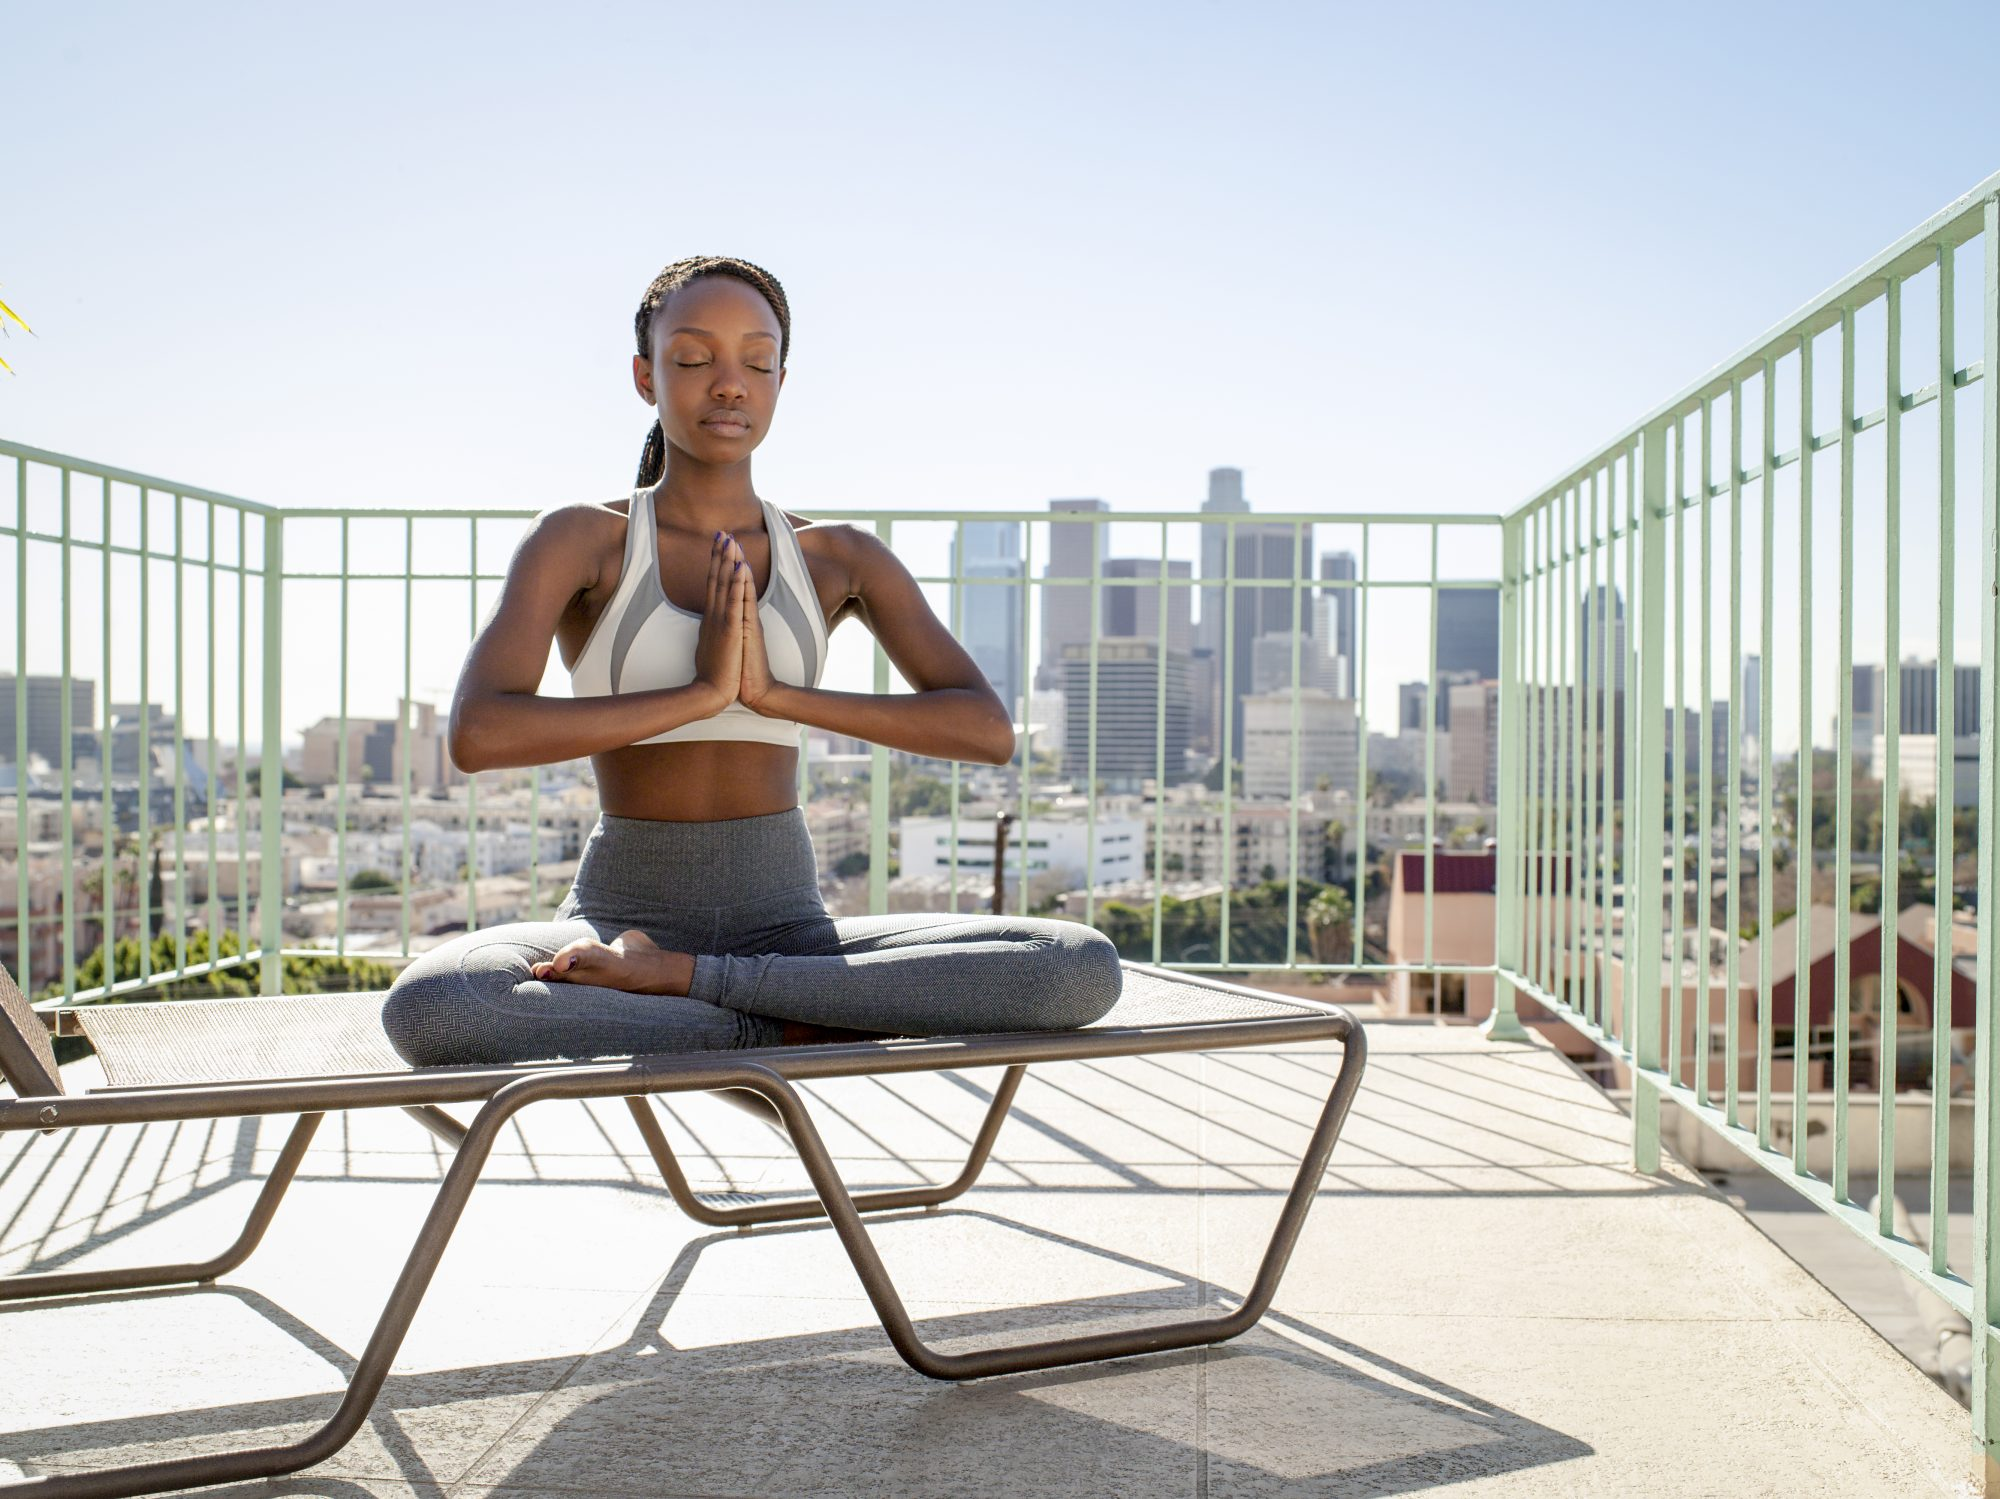 Why Can't I Meditate? 7 Solutions to Common Meditation Blockers